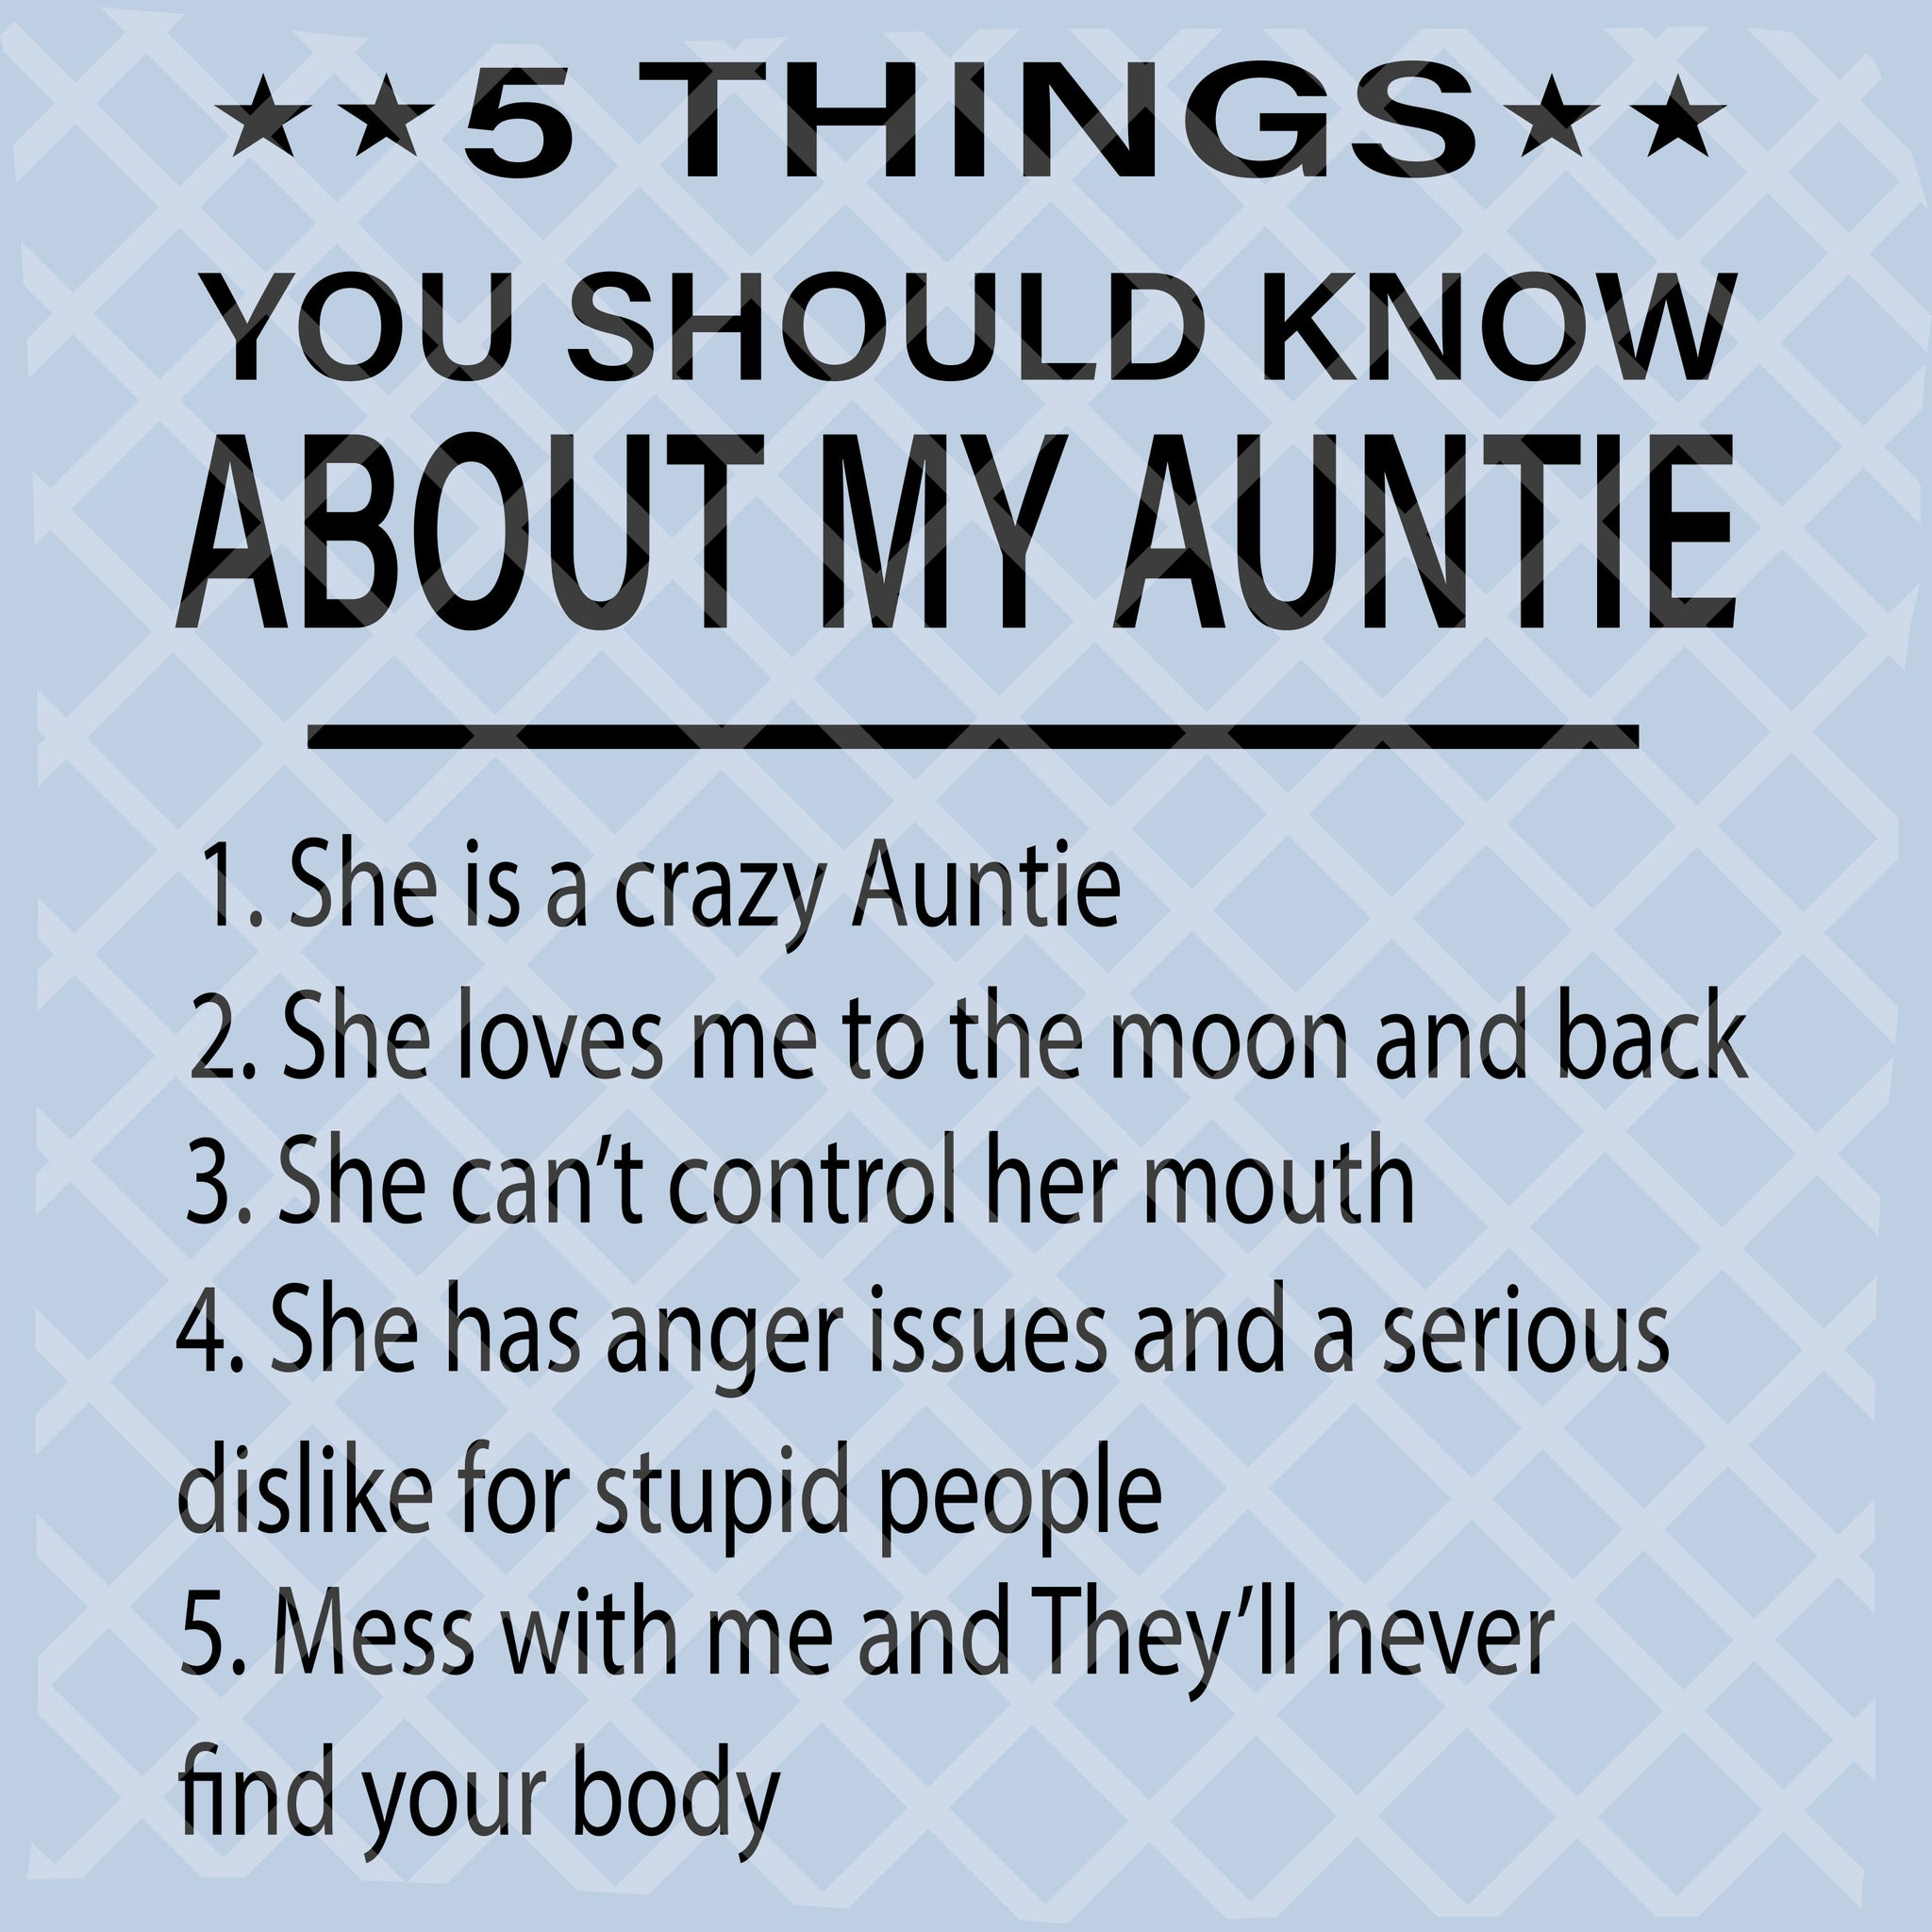 5 things you should know about my auntie, auntie svg, auntie, auntie gift, auntie lover, auntie life,family svg, family shirt,family gift,trending svg, Files For Silhouette, Files For Cricut, SVG, DXF, EPS, PNG, Instant Download